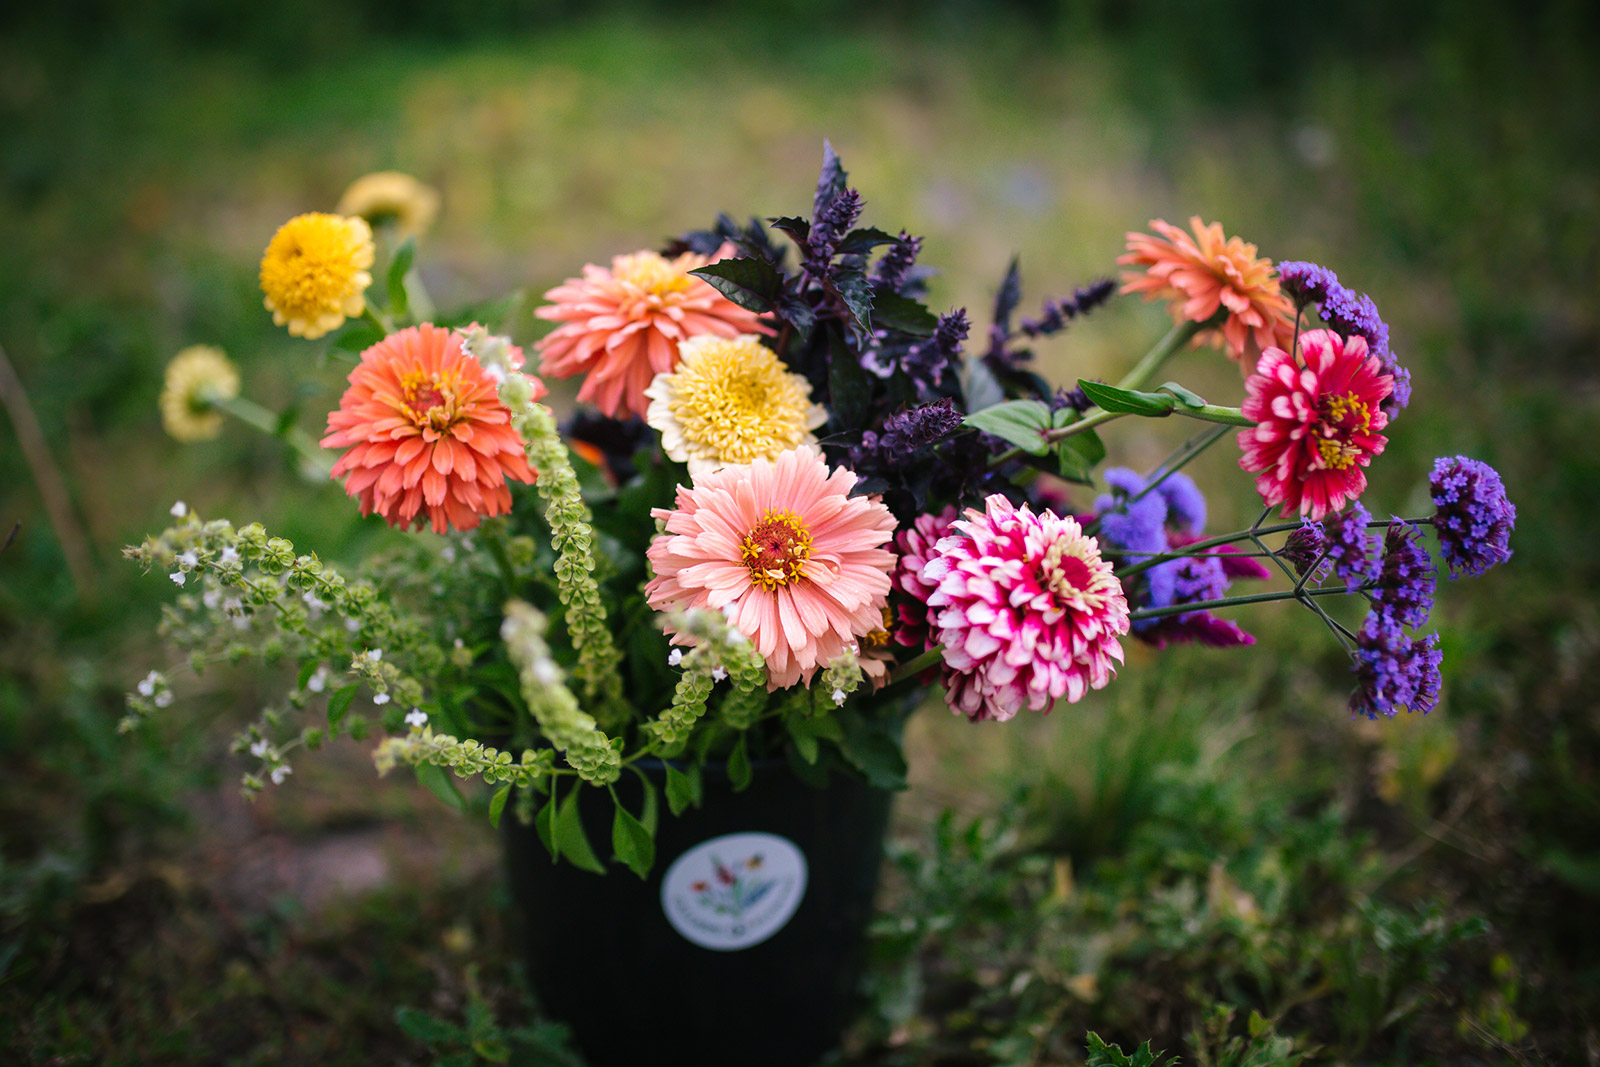 Calliope Flowers are displayed in this Montana photograph taken at their farm.